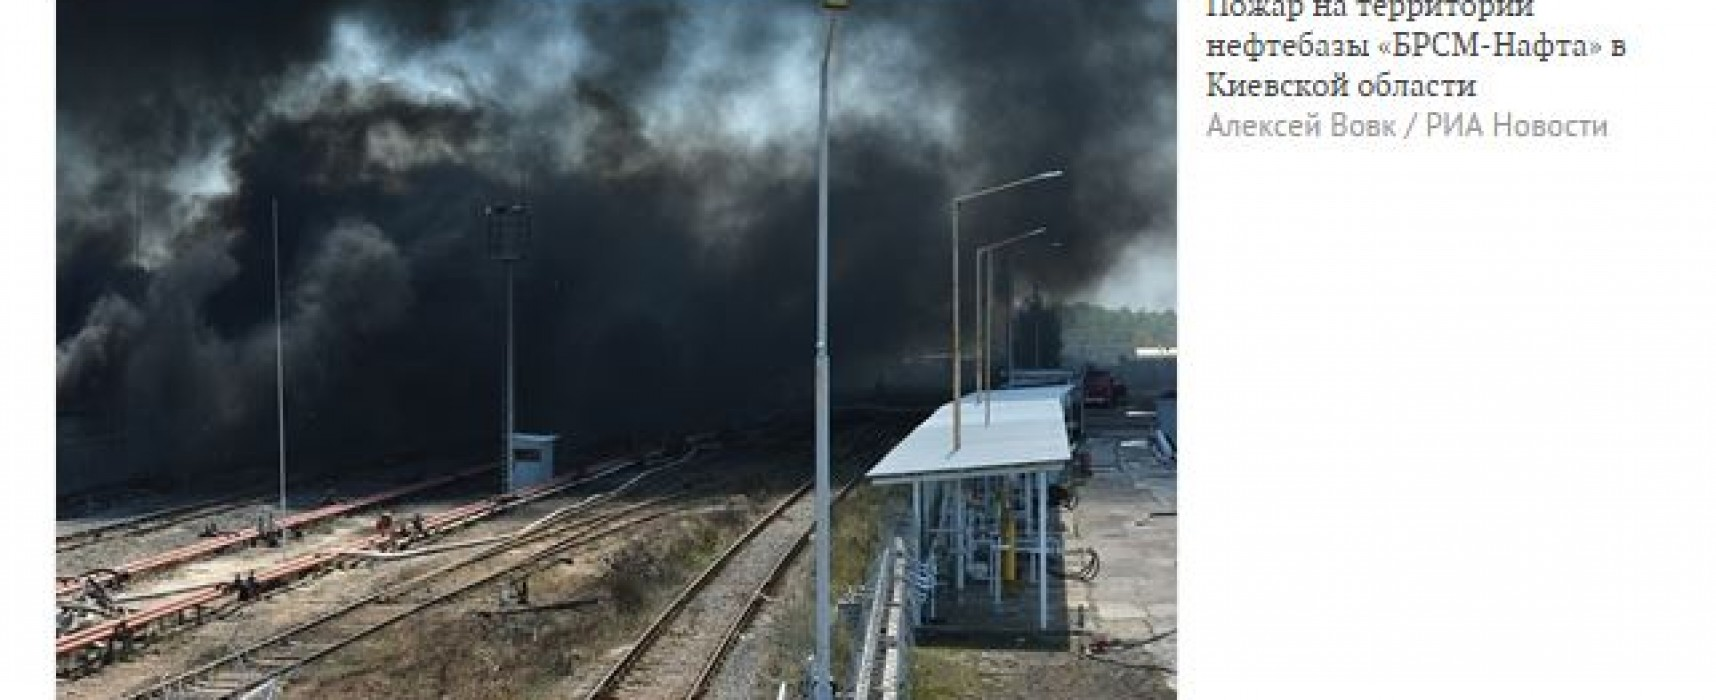 Fake: New Fire at Fuel Tanks near Kyiv on June 12